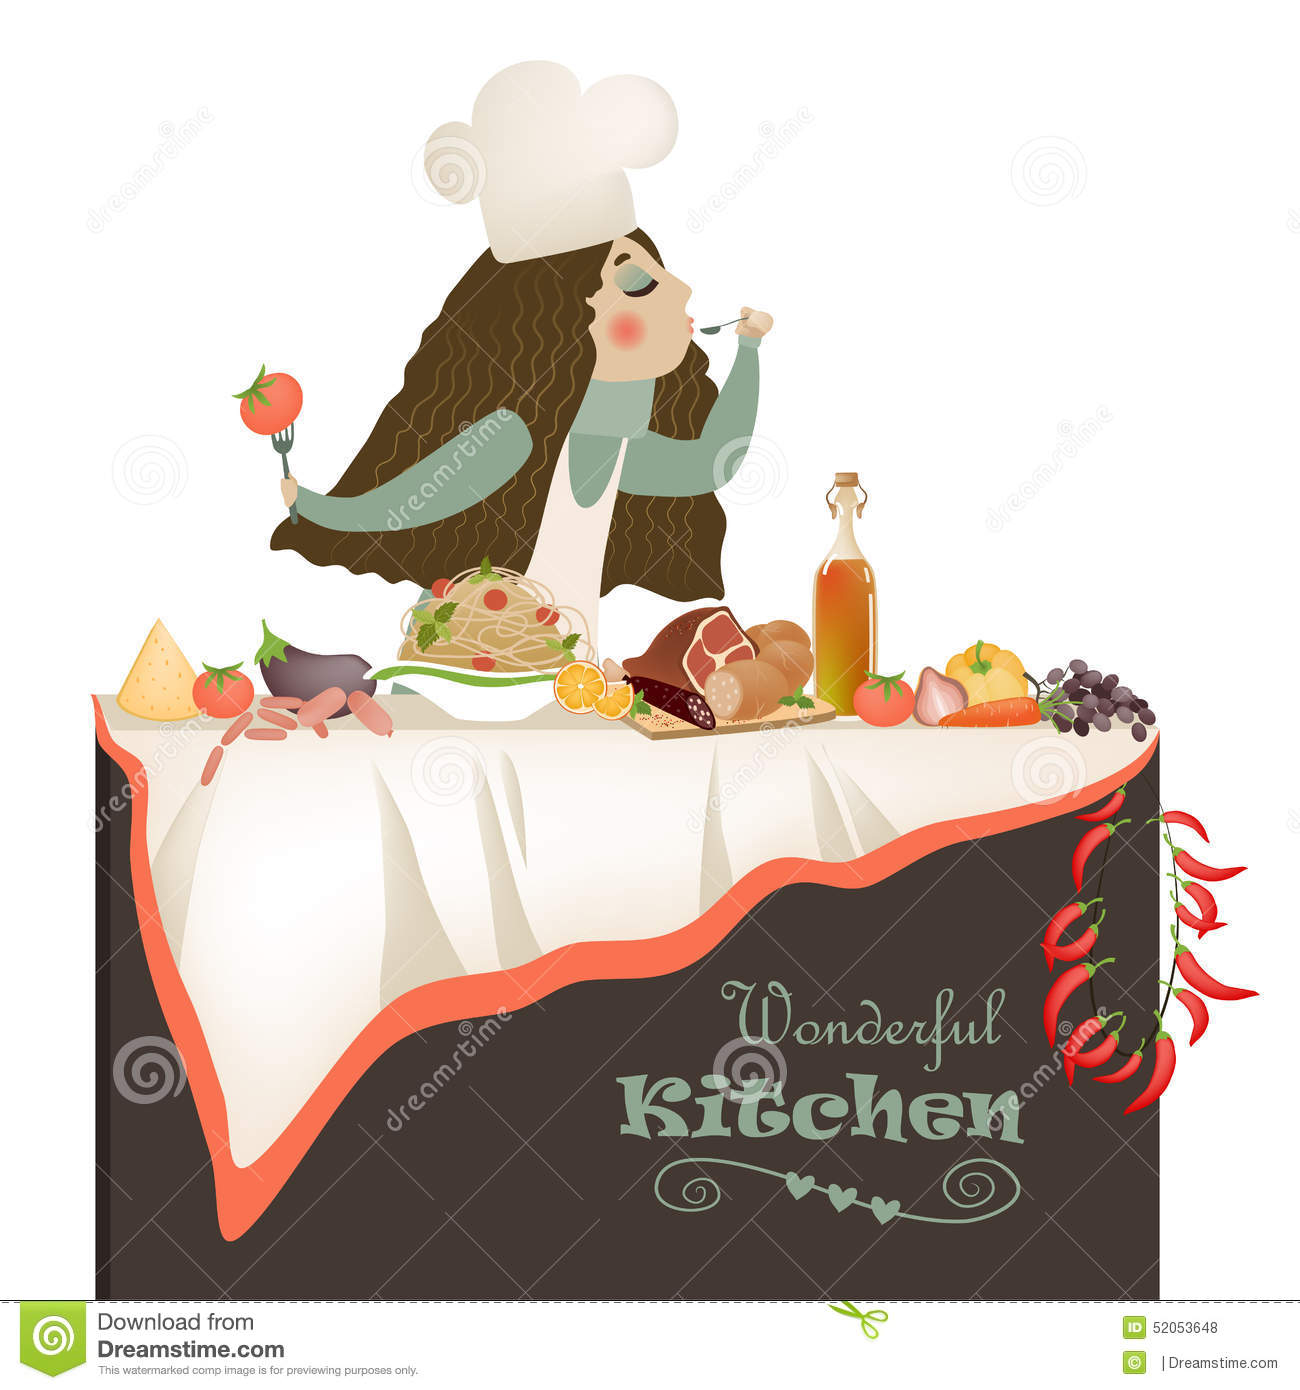 Woman Cooking In The Kitchen Stock Vector - Image: 52053648